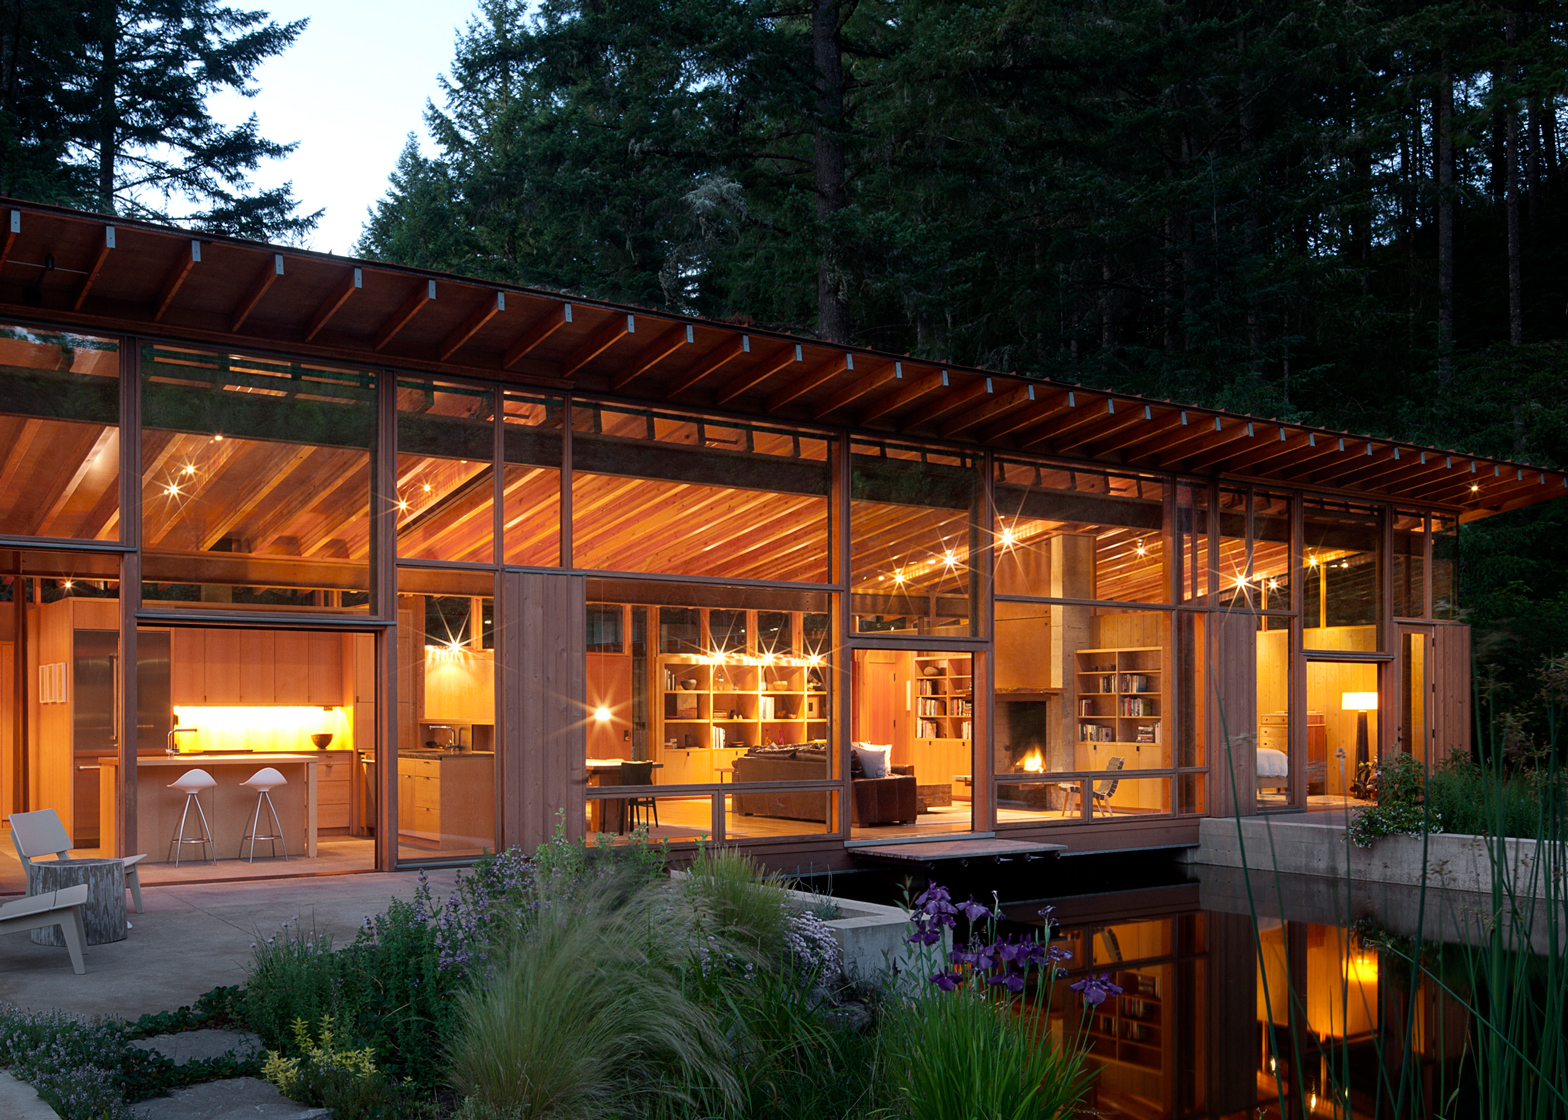 Newberg Residence; Newberg, Oregon by Cutler Anderson Architects. Photography by Jeremy Bitterman & Carey Critchlow